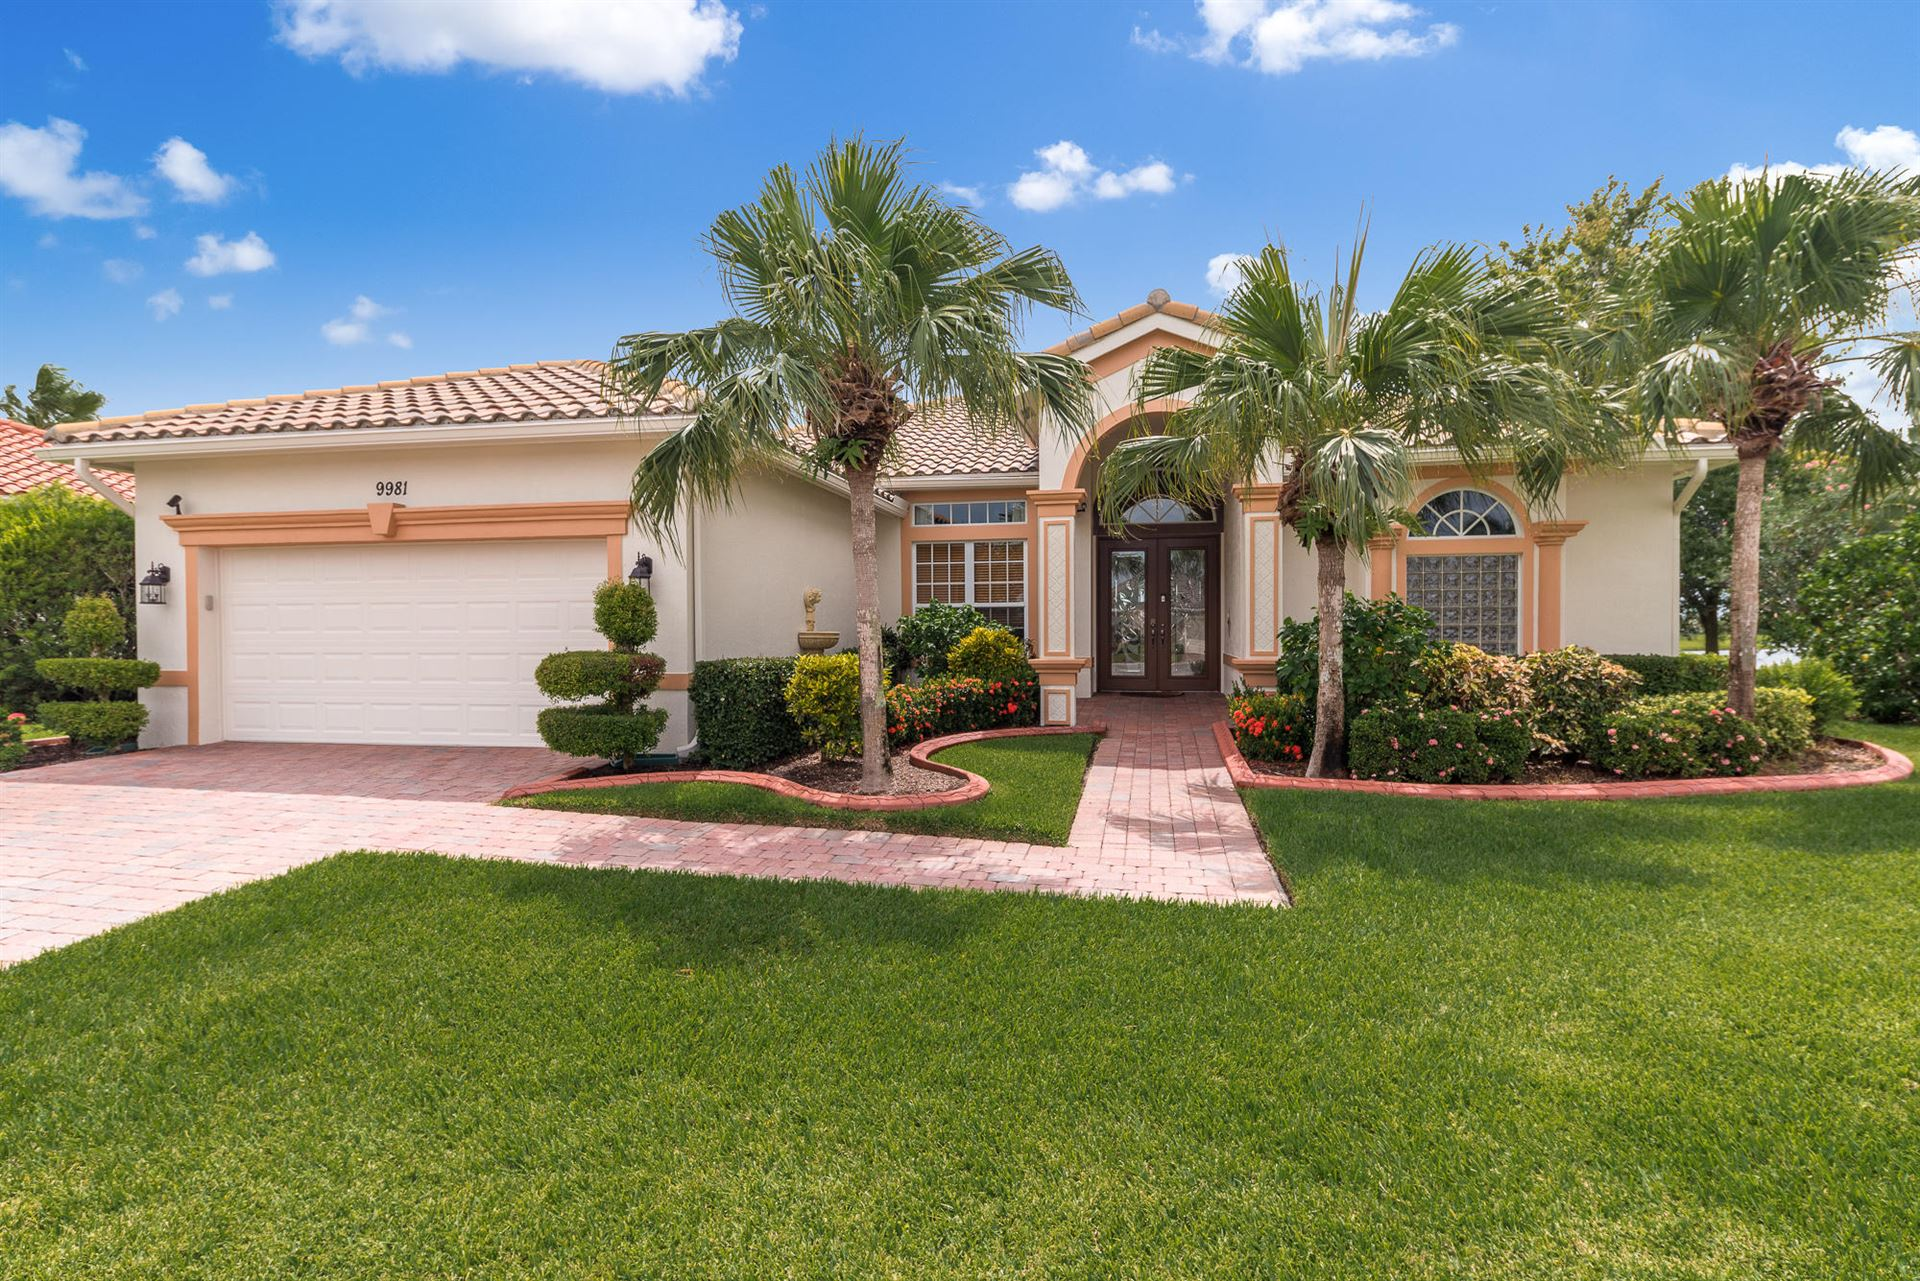 9981 SW Papaya Tree Court, Port Saint Lucie, FL 34987 - #: RX-10641524